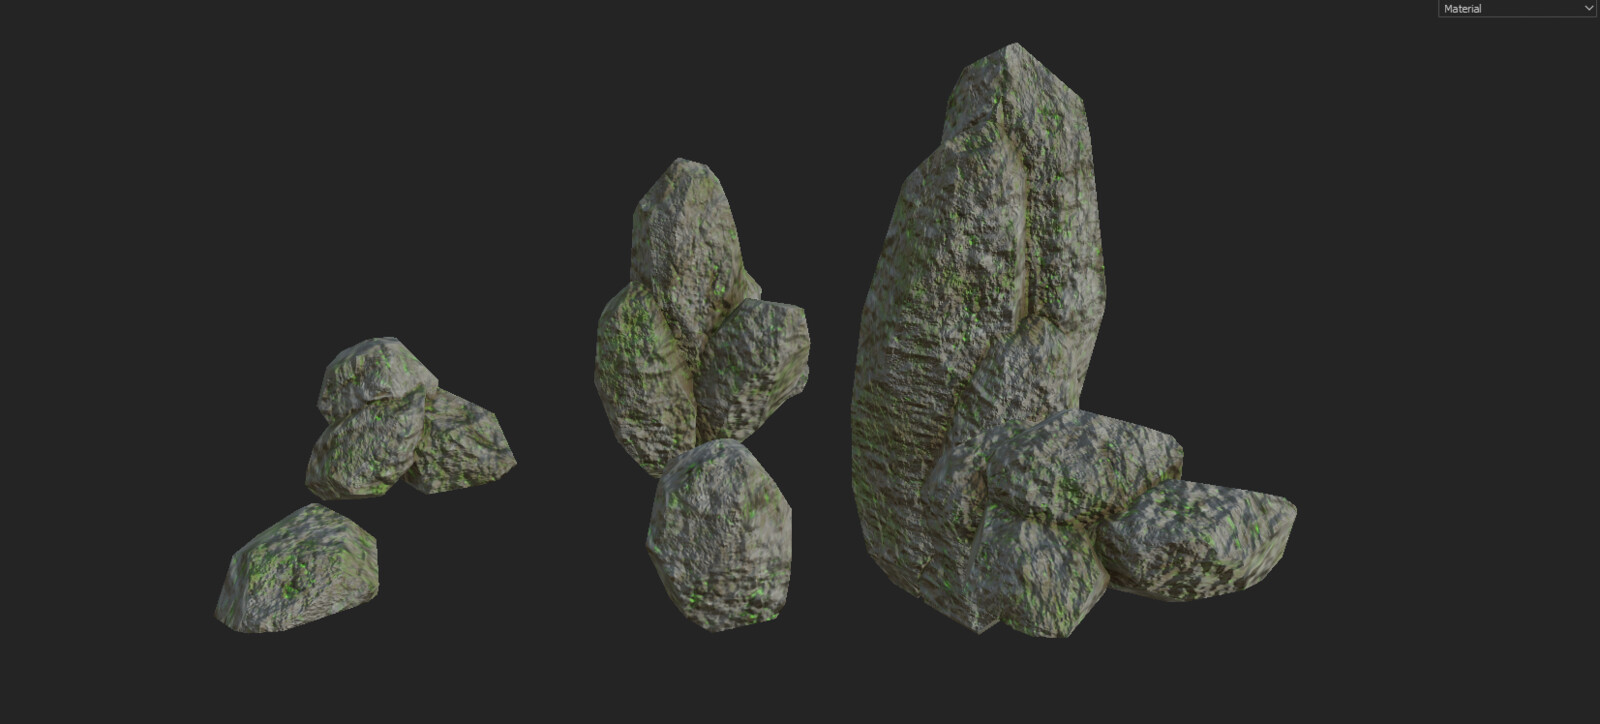 Rock set modeled in Blender and textured in Substance Painter